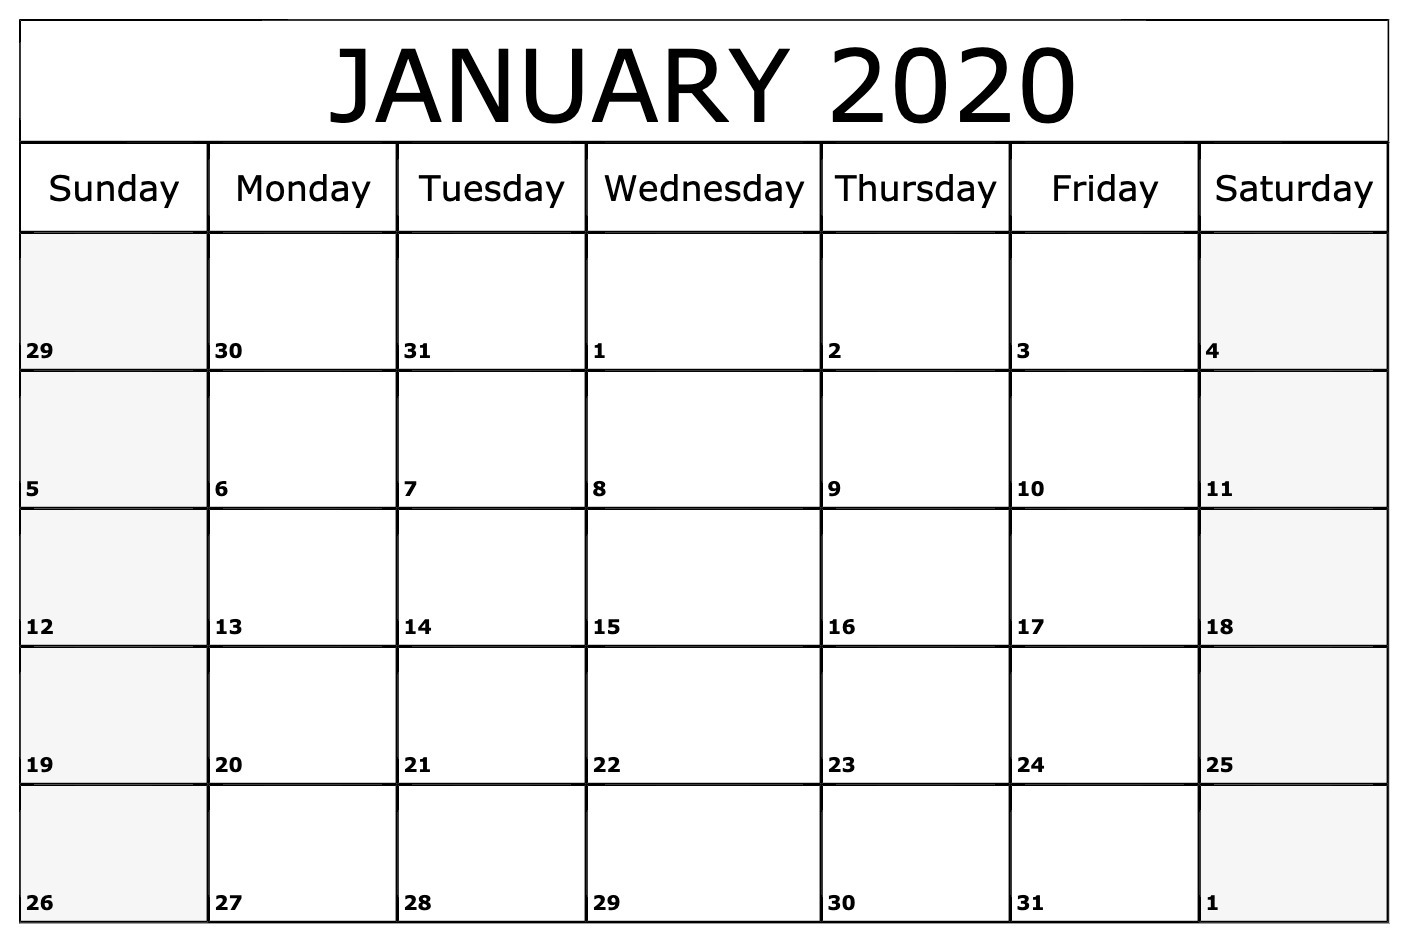 photo regarding January Calendar Printable named January 2020 Calendar Printable Template in just PDF Phrase Excel